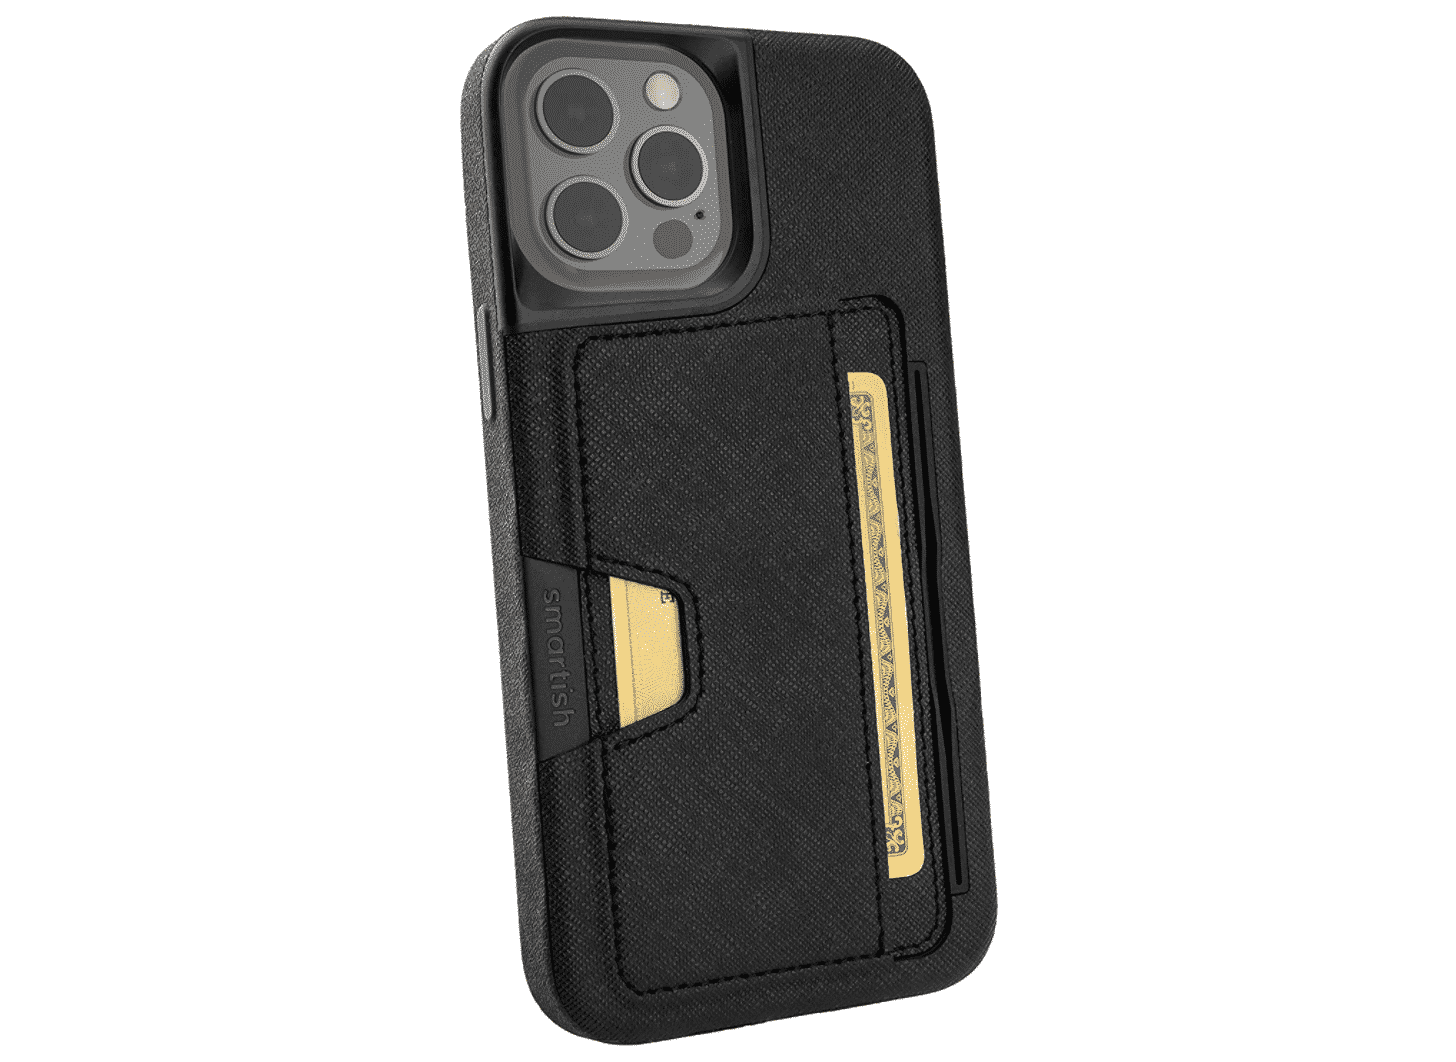 Black Friday deals on the iPhone 12/12 Pro/12 Pro Max/12 mini cases